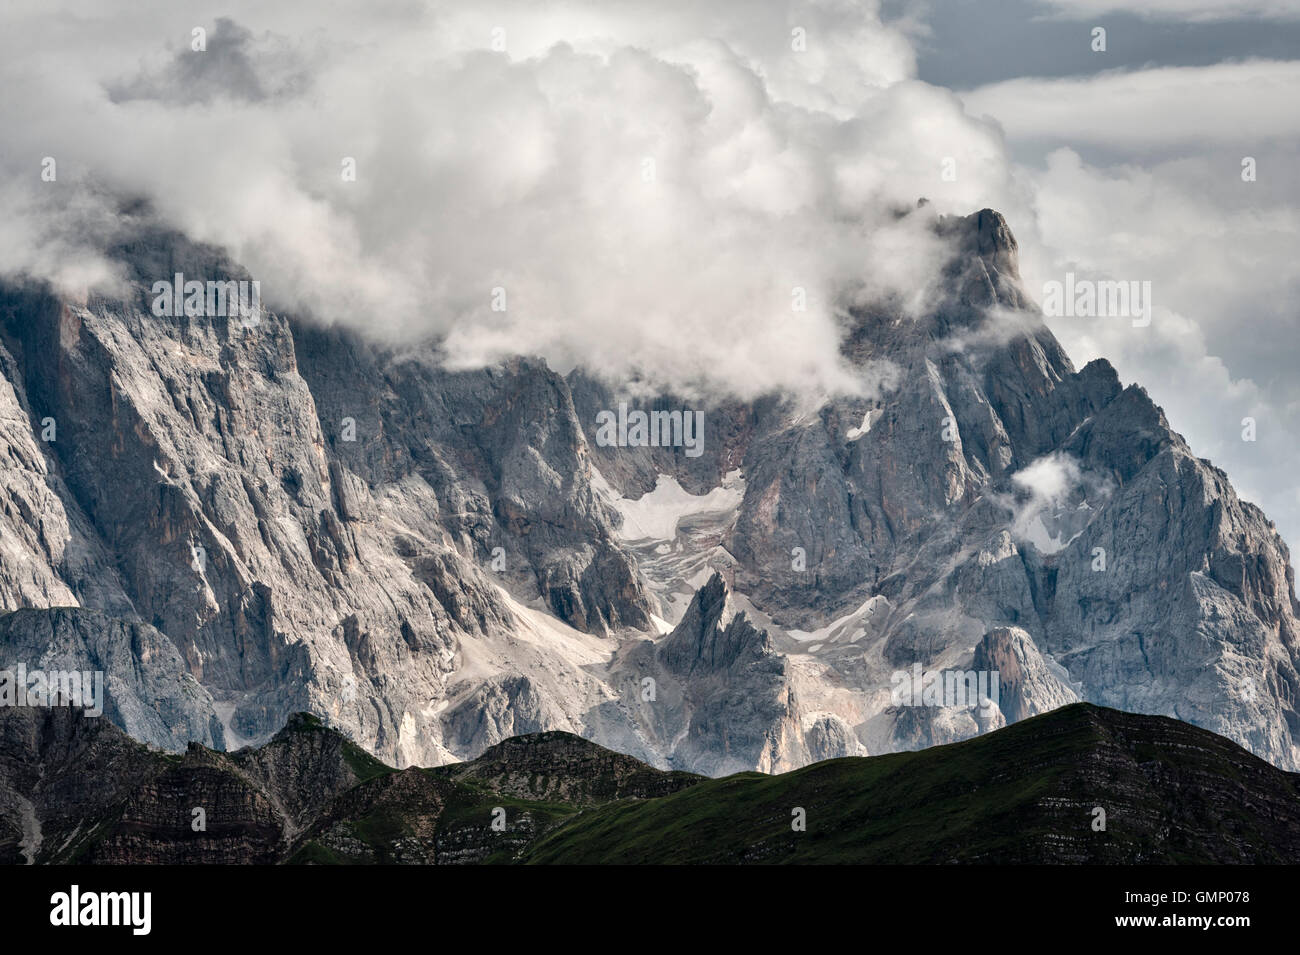 The Dolomites, Trentino, northern Italy. Part of the Pale di San Martino as seen from Monte Pradazzo, in summer Stock Photo